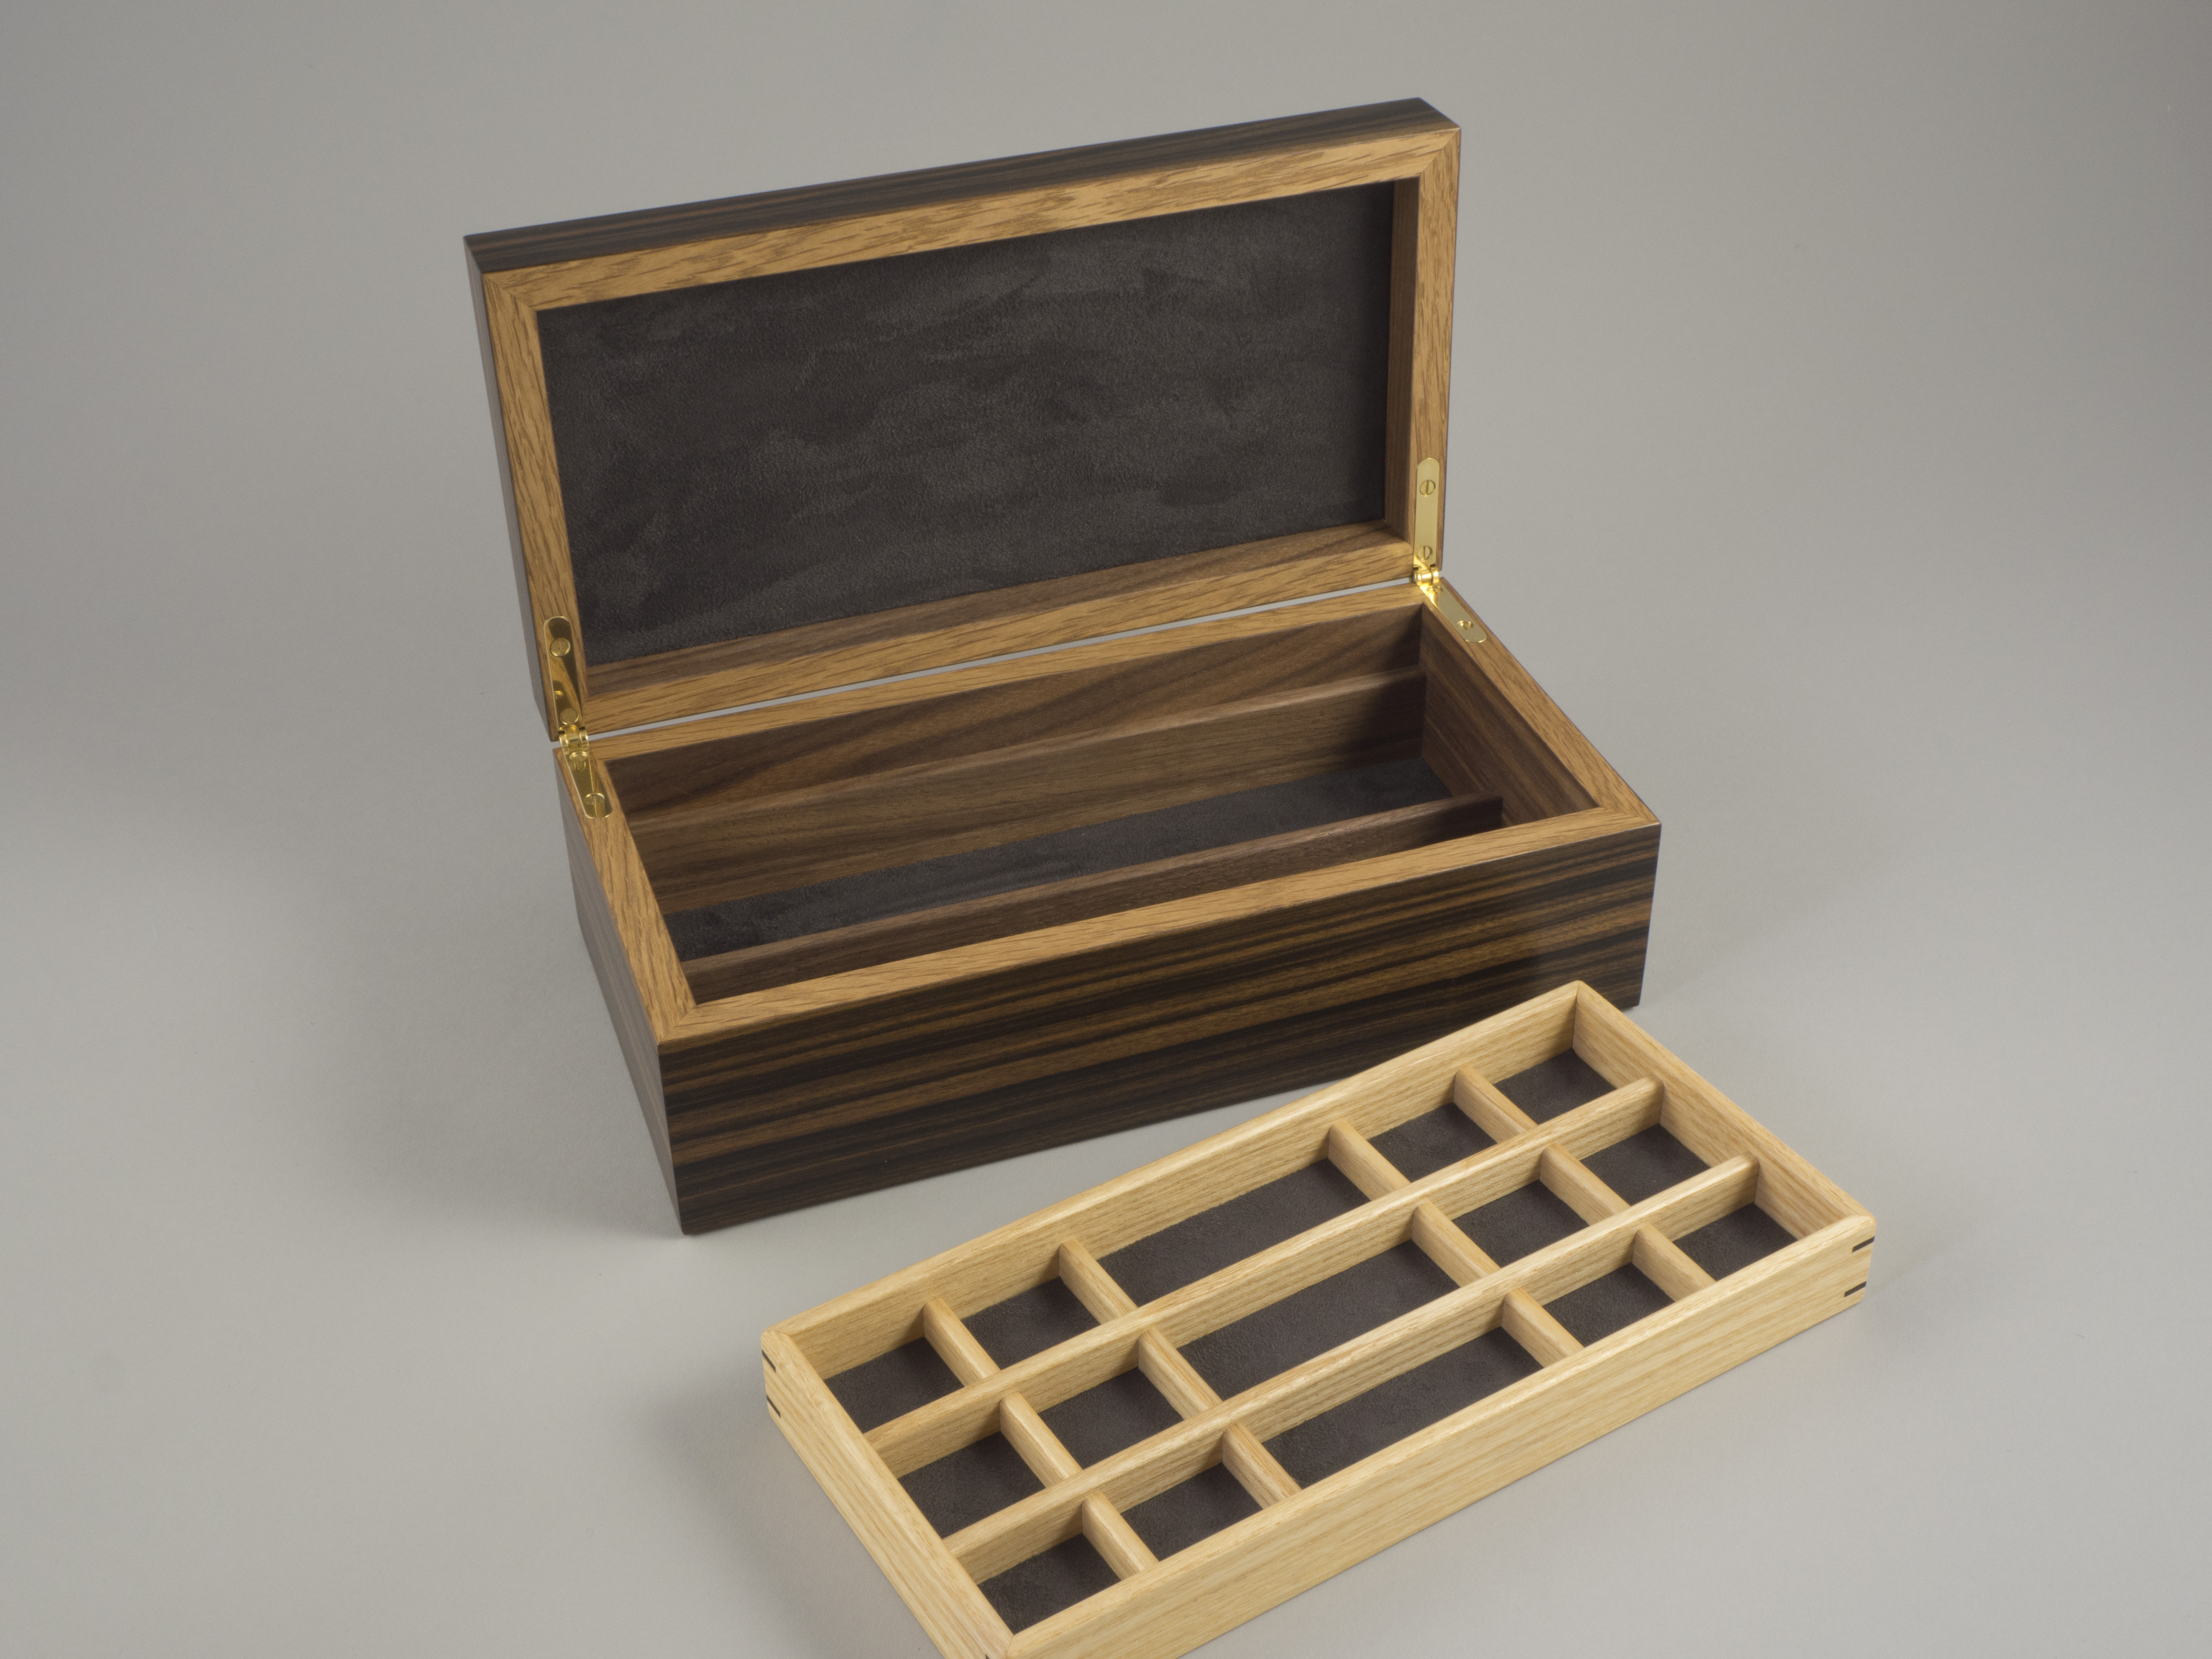 Lower storage compartment